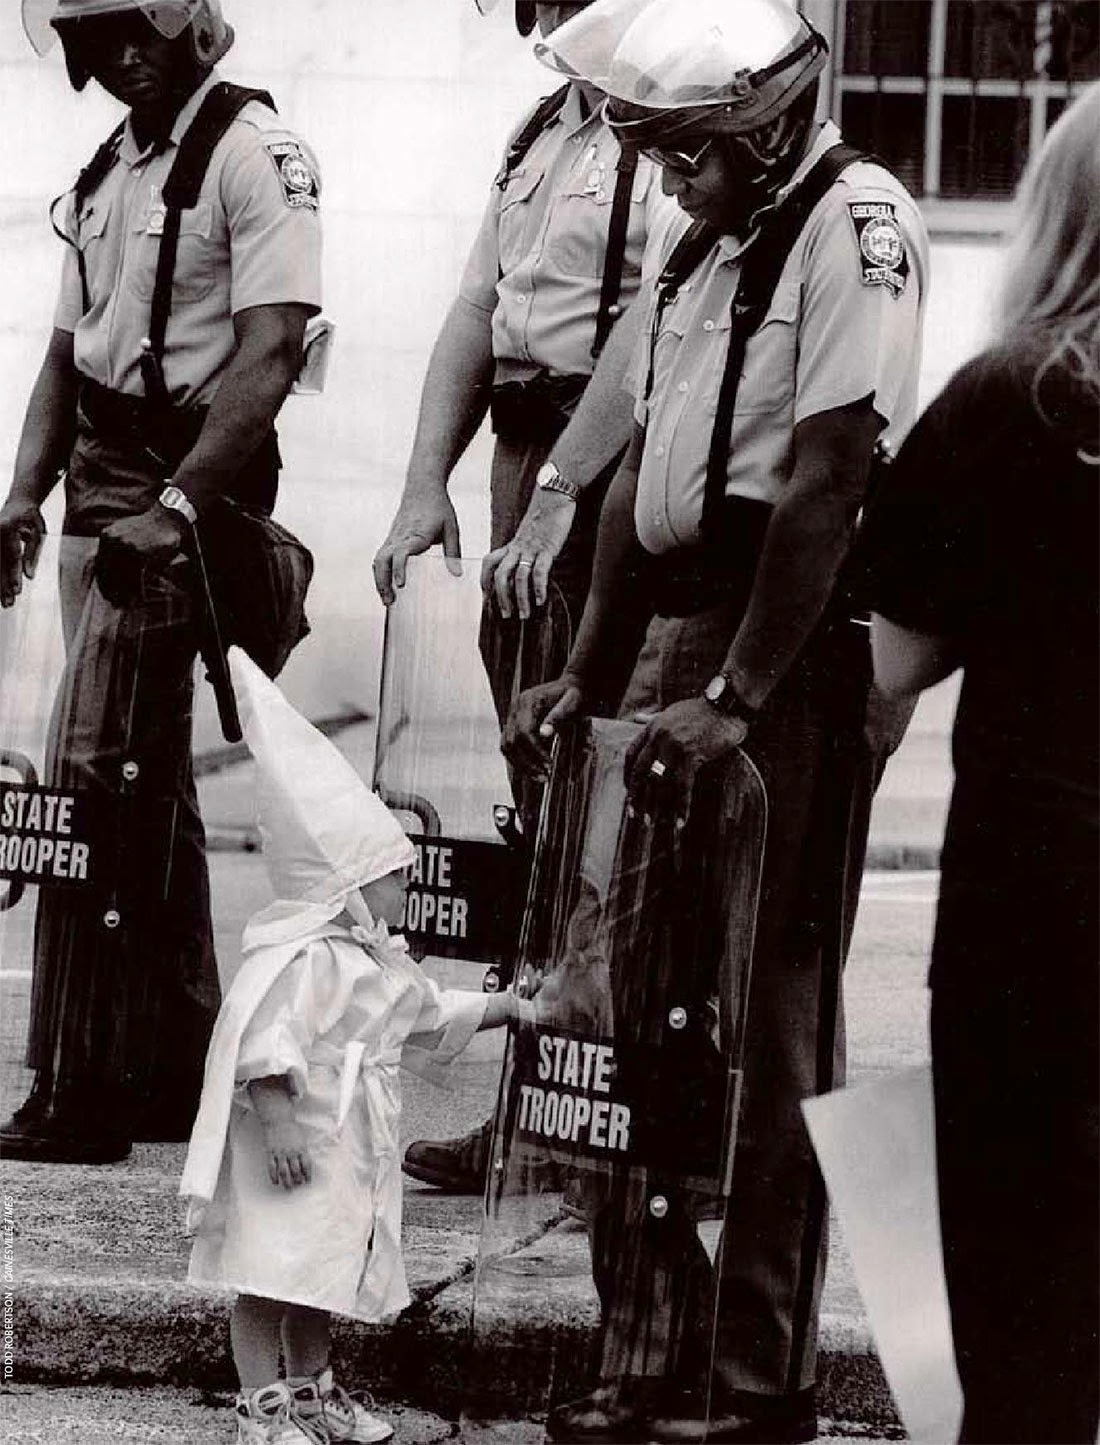 The Wall - Page 8 A+KKK+child+and+a+black+State+Trooper+meet+each+other,+1992+2